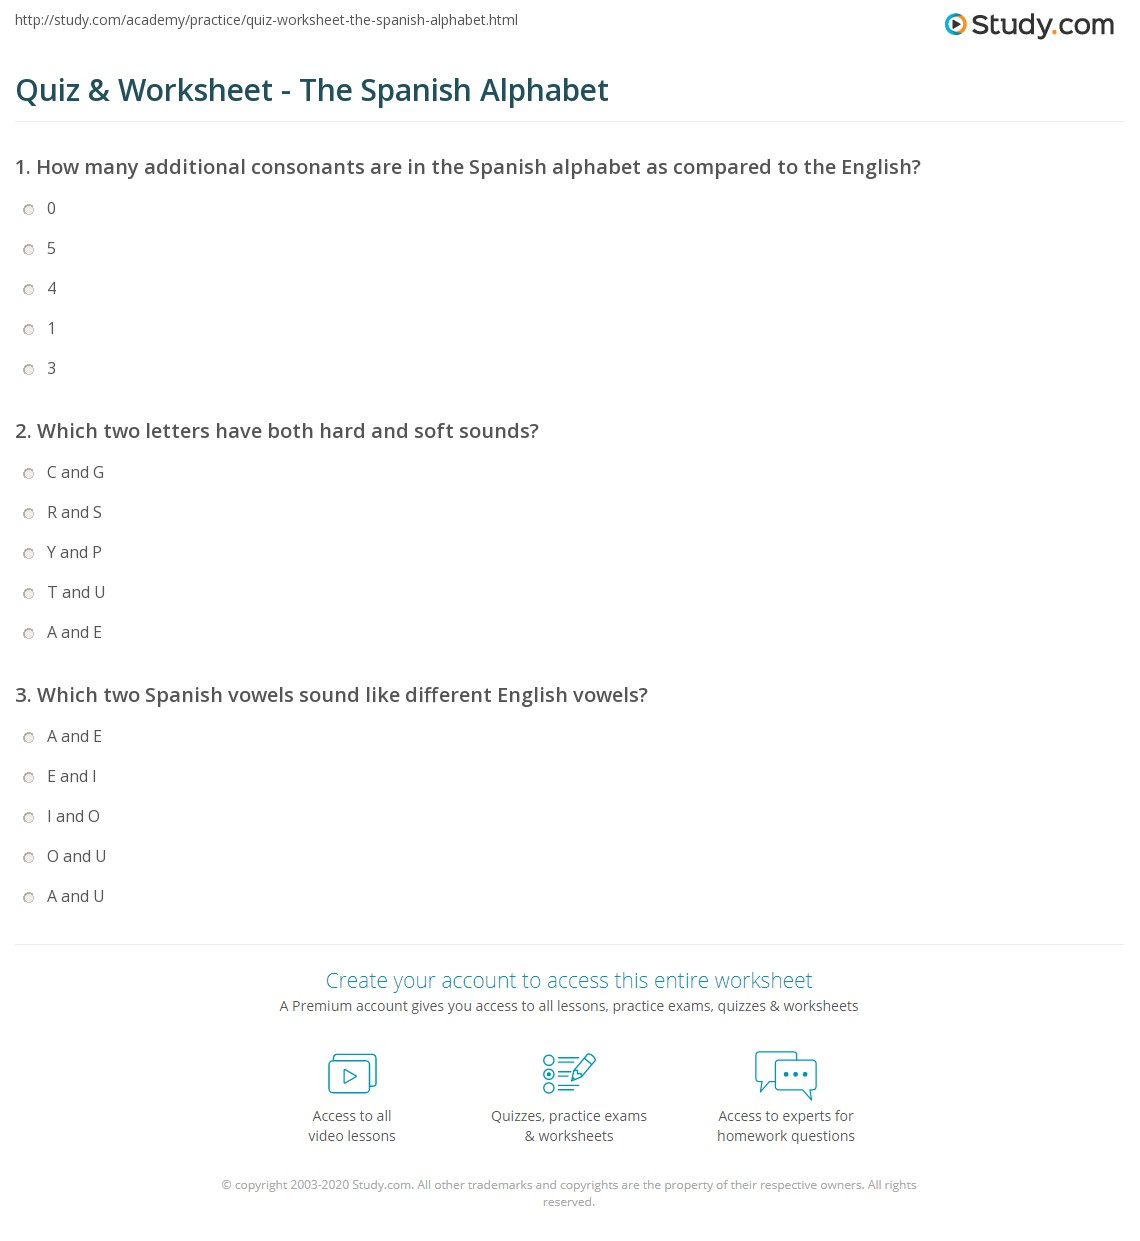 Printables Spanish Alphabet Worksheets Mywcct Thousands